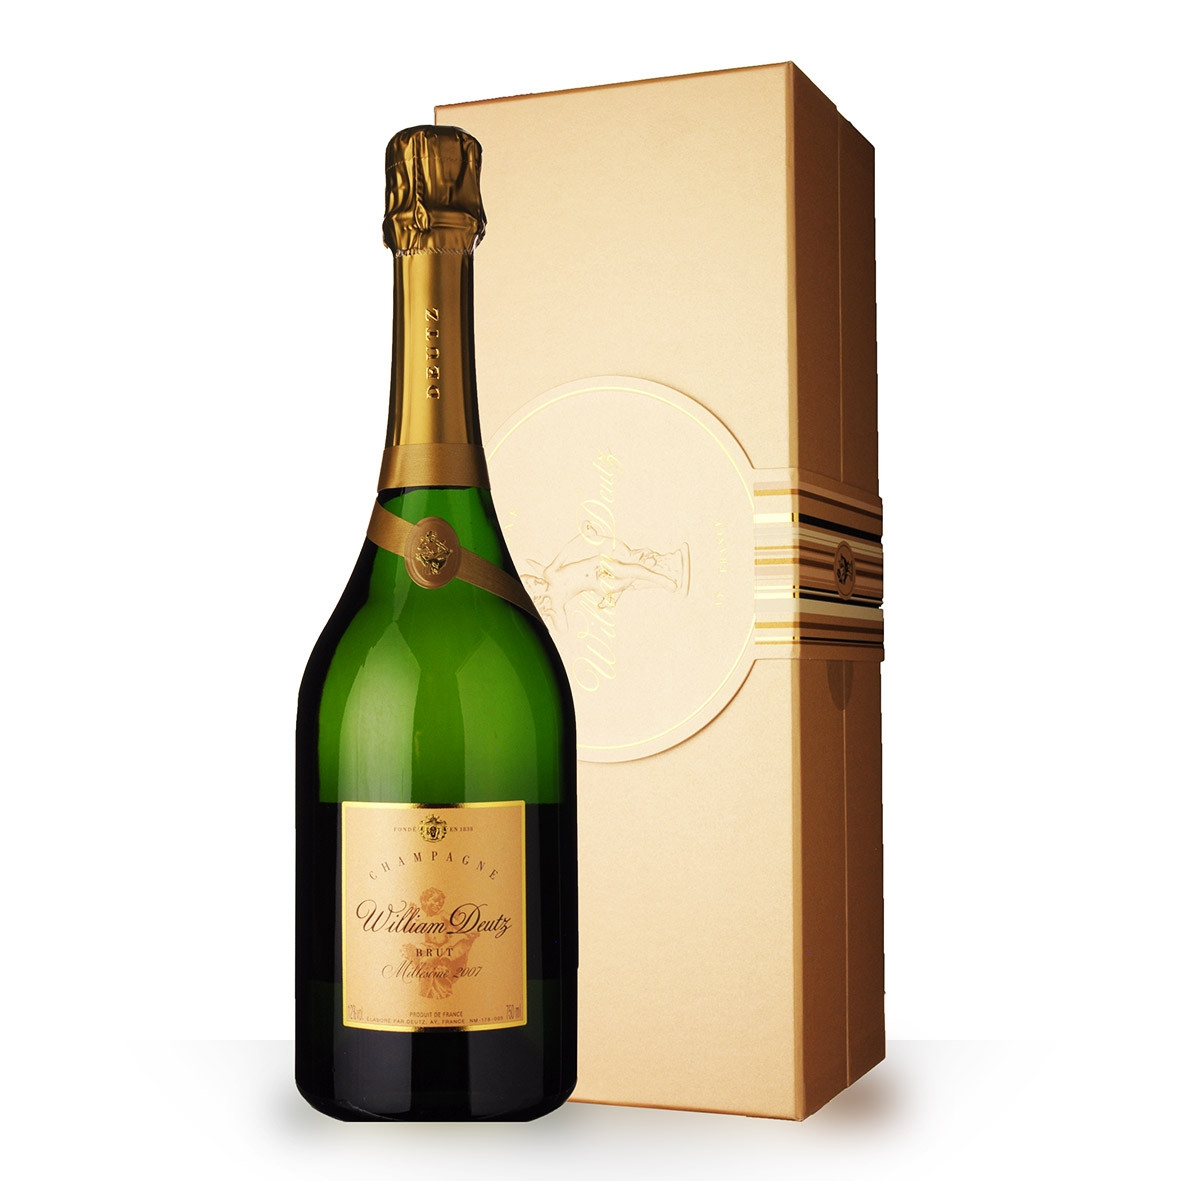 Champagne Deutz Cuvée William Deutz 2007 Brut 75cl Coffret www.odyssee-vins.com